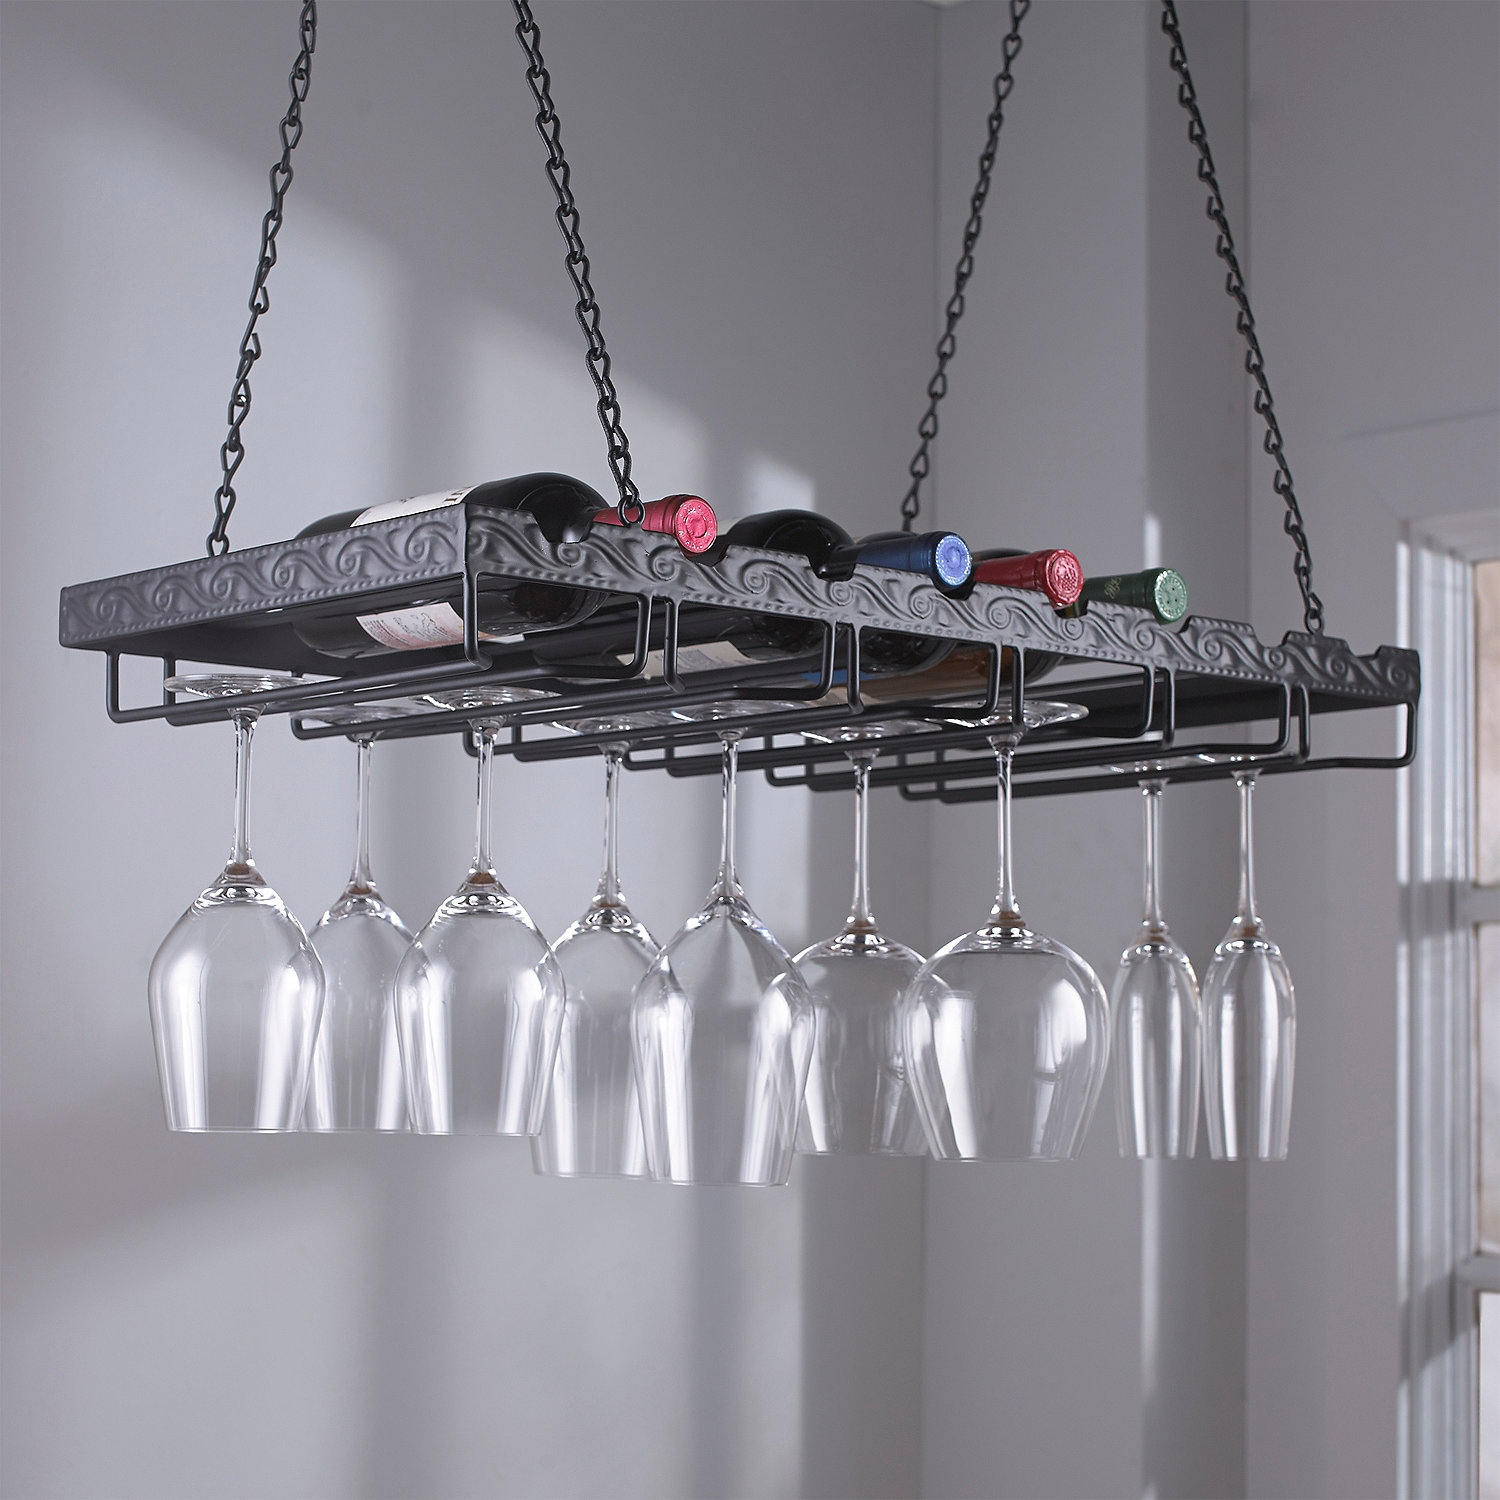 Metal Hanging Wine Glass Rack Hanging Wine Glass Rack Wine Throughout Hanging Glass Shelves From Ceiling (#8 of 12)